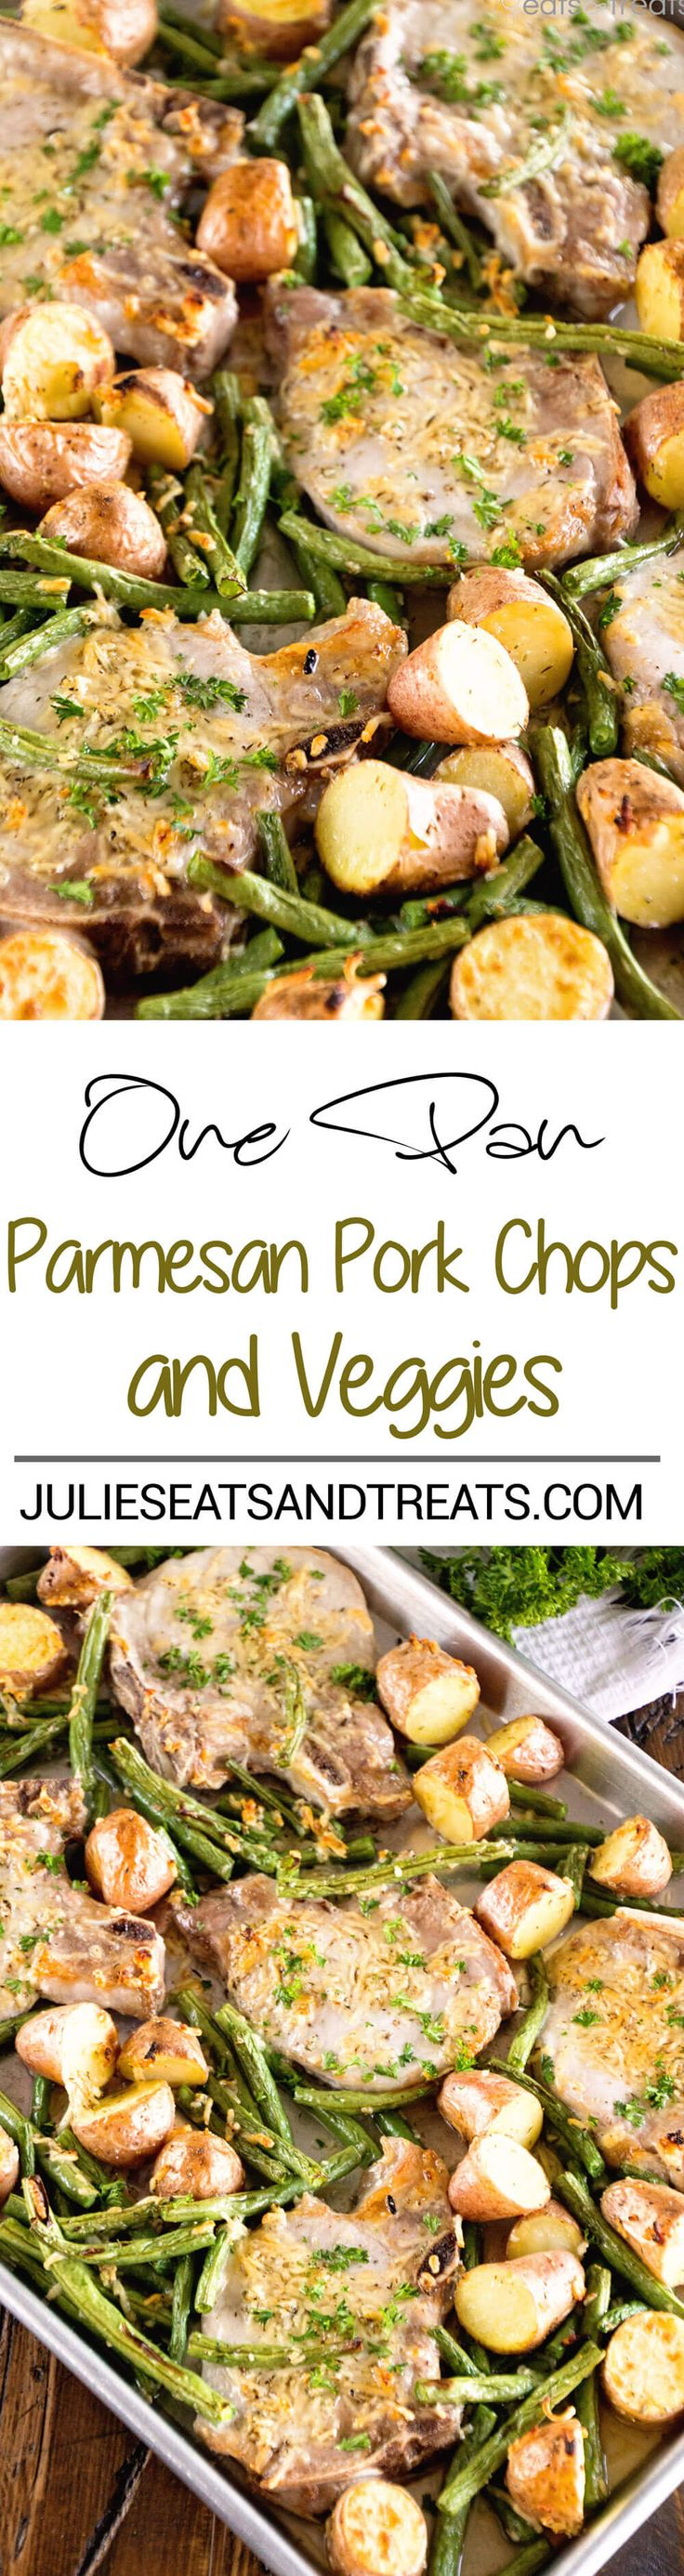 One Pan Parmesan Pork Chops and Veggies Recipe ~ Juicy Pork Chops Baked in the Oven with Potatoes and Veggies Seasoned with Garlic, Thyme and Parmesan! Dinner ready in 30 Minutes! ~ http://www.julieseatsandtreats.com